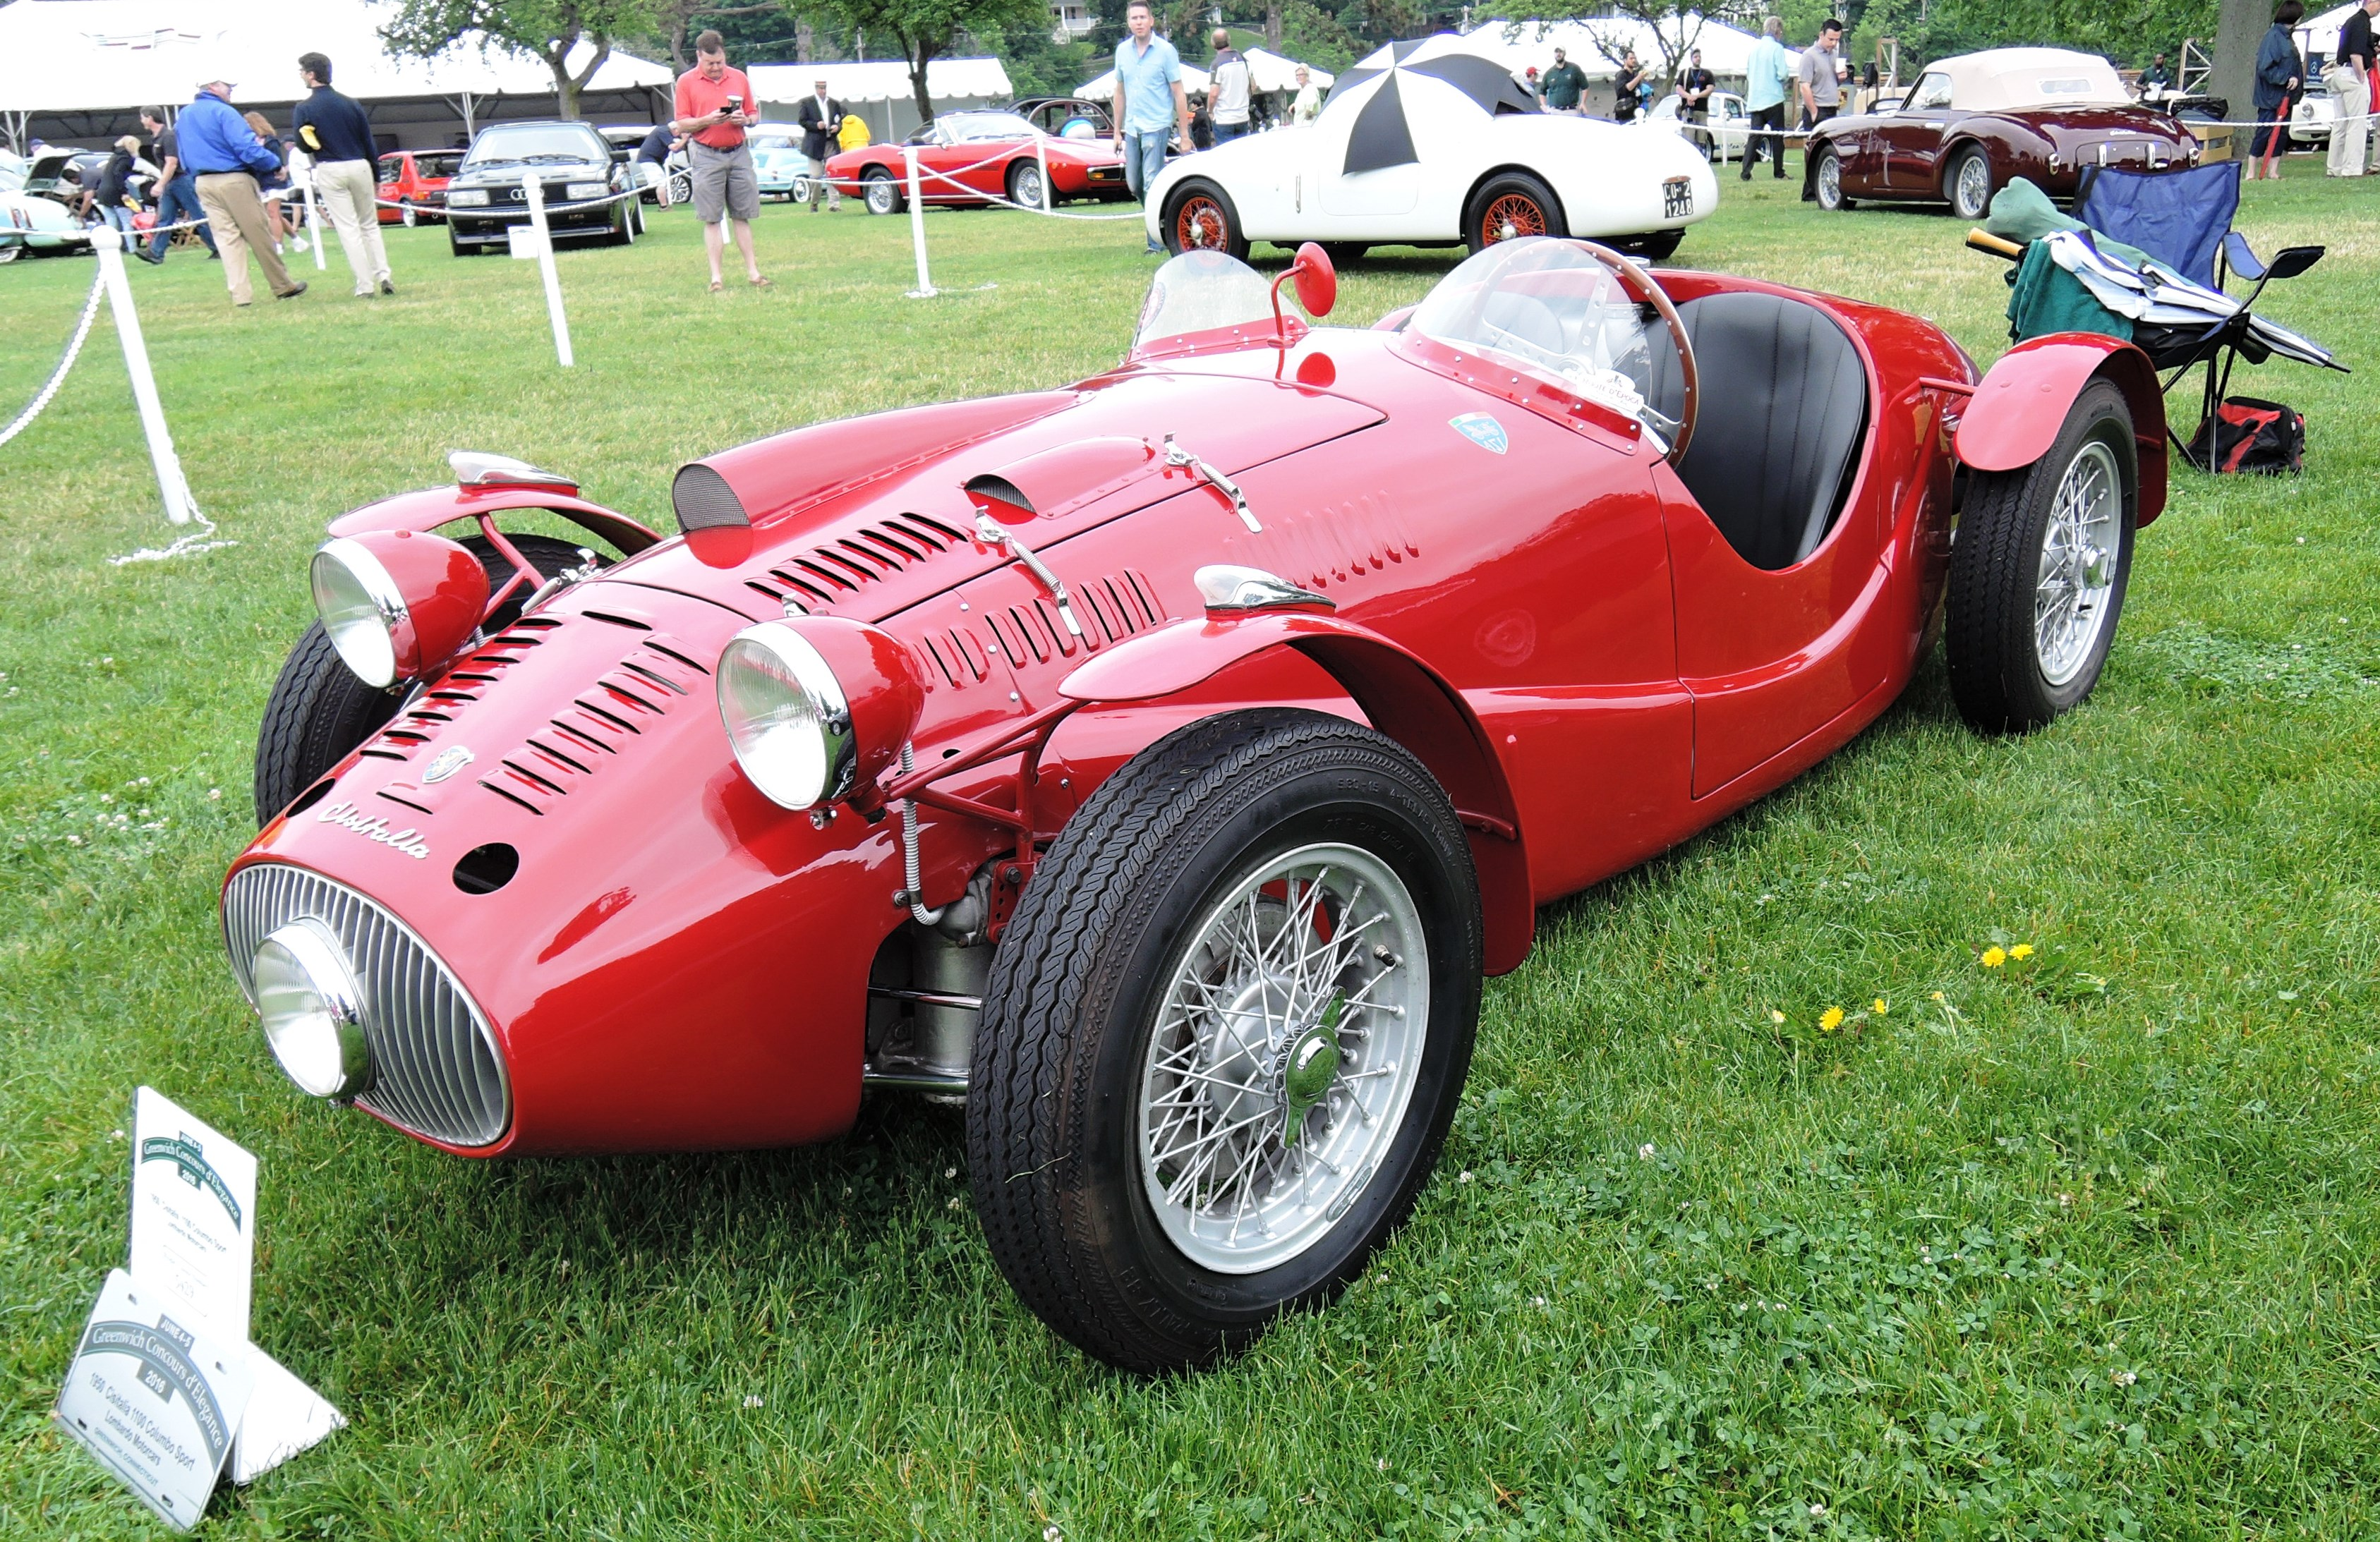 red 1950 Cisitalia 1100 Columbo Sport - Greenwich concours d'elegance